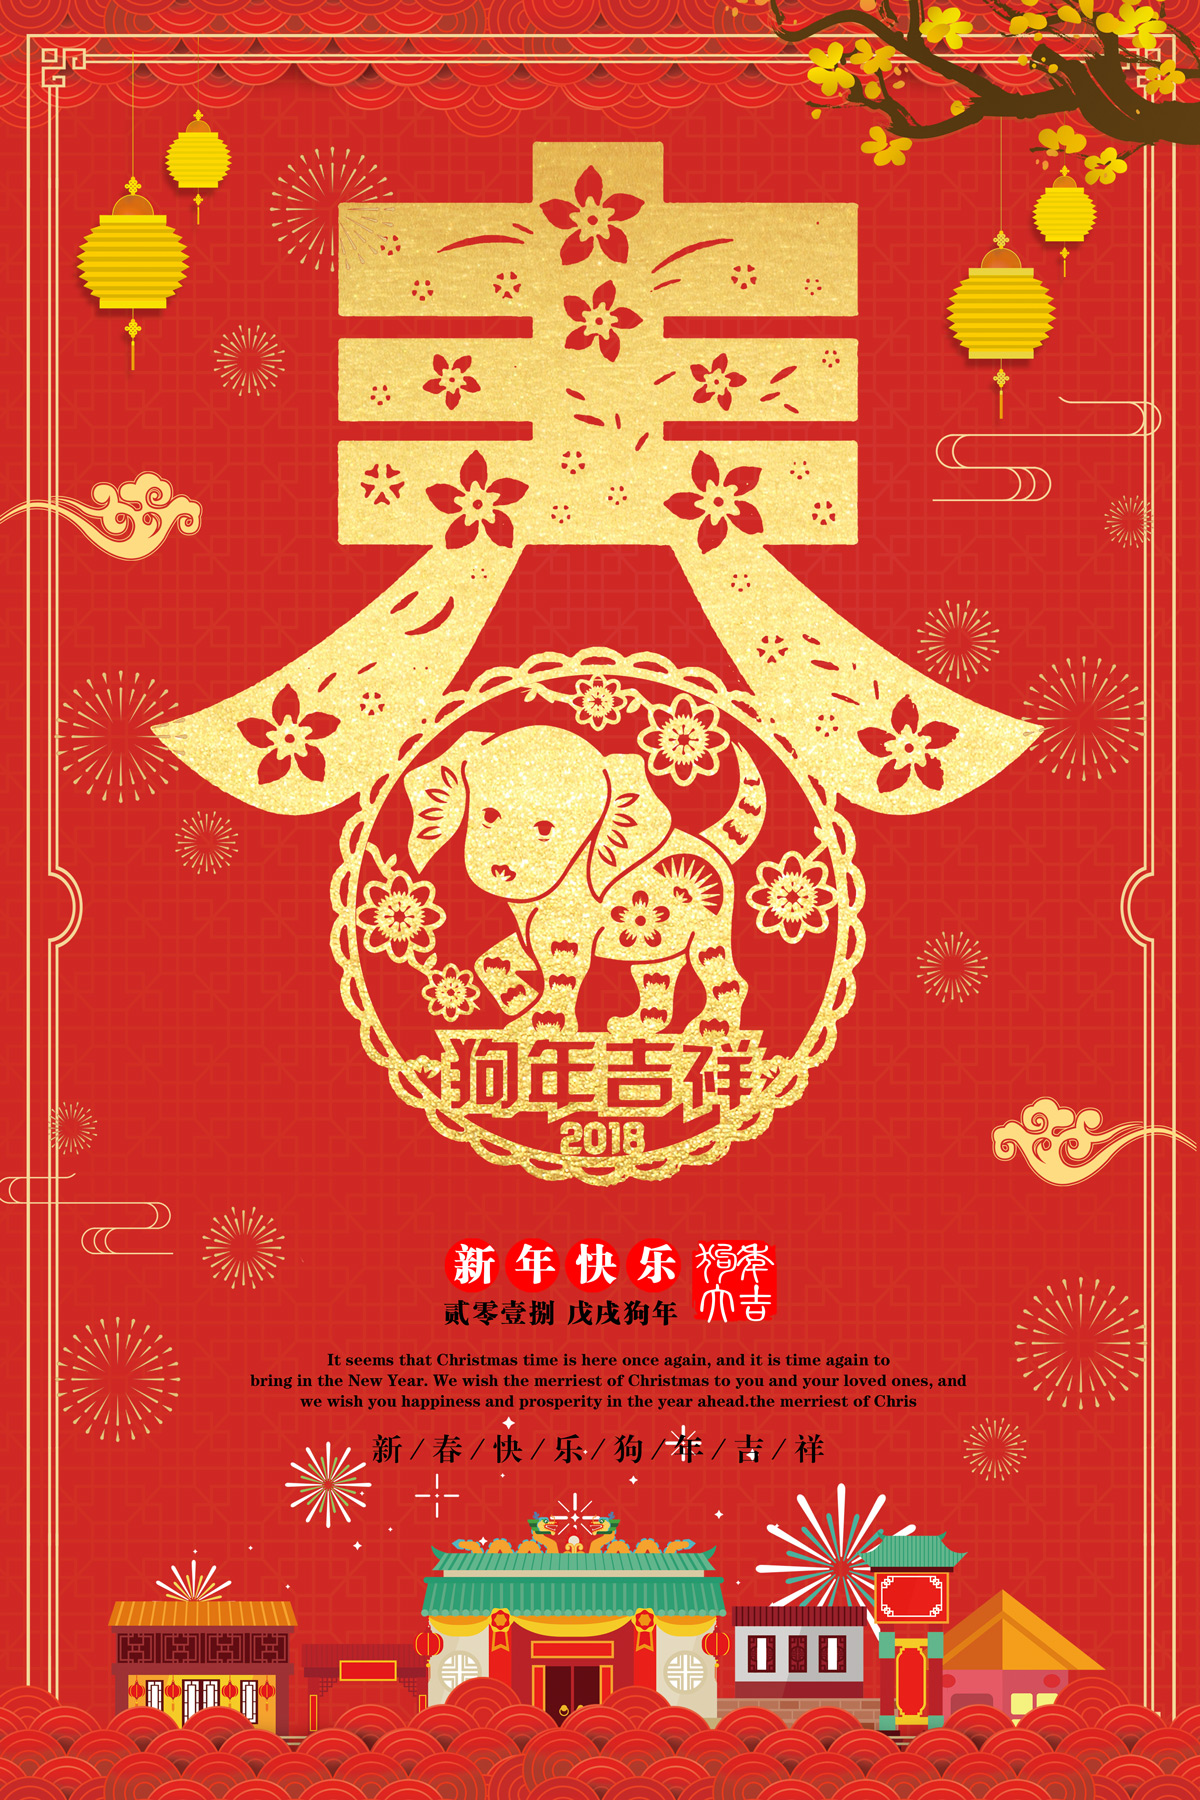 Year of the dog poster - China PSD File Free Download